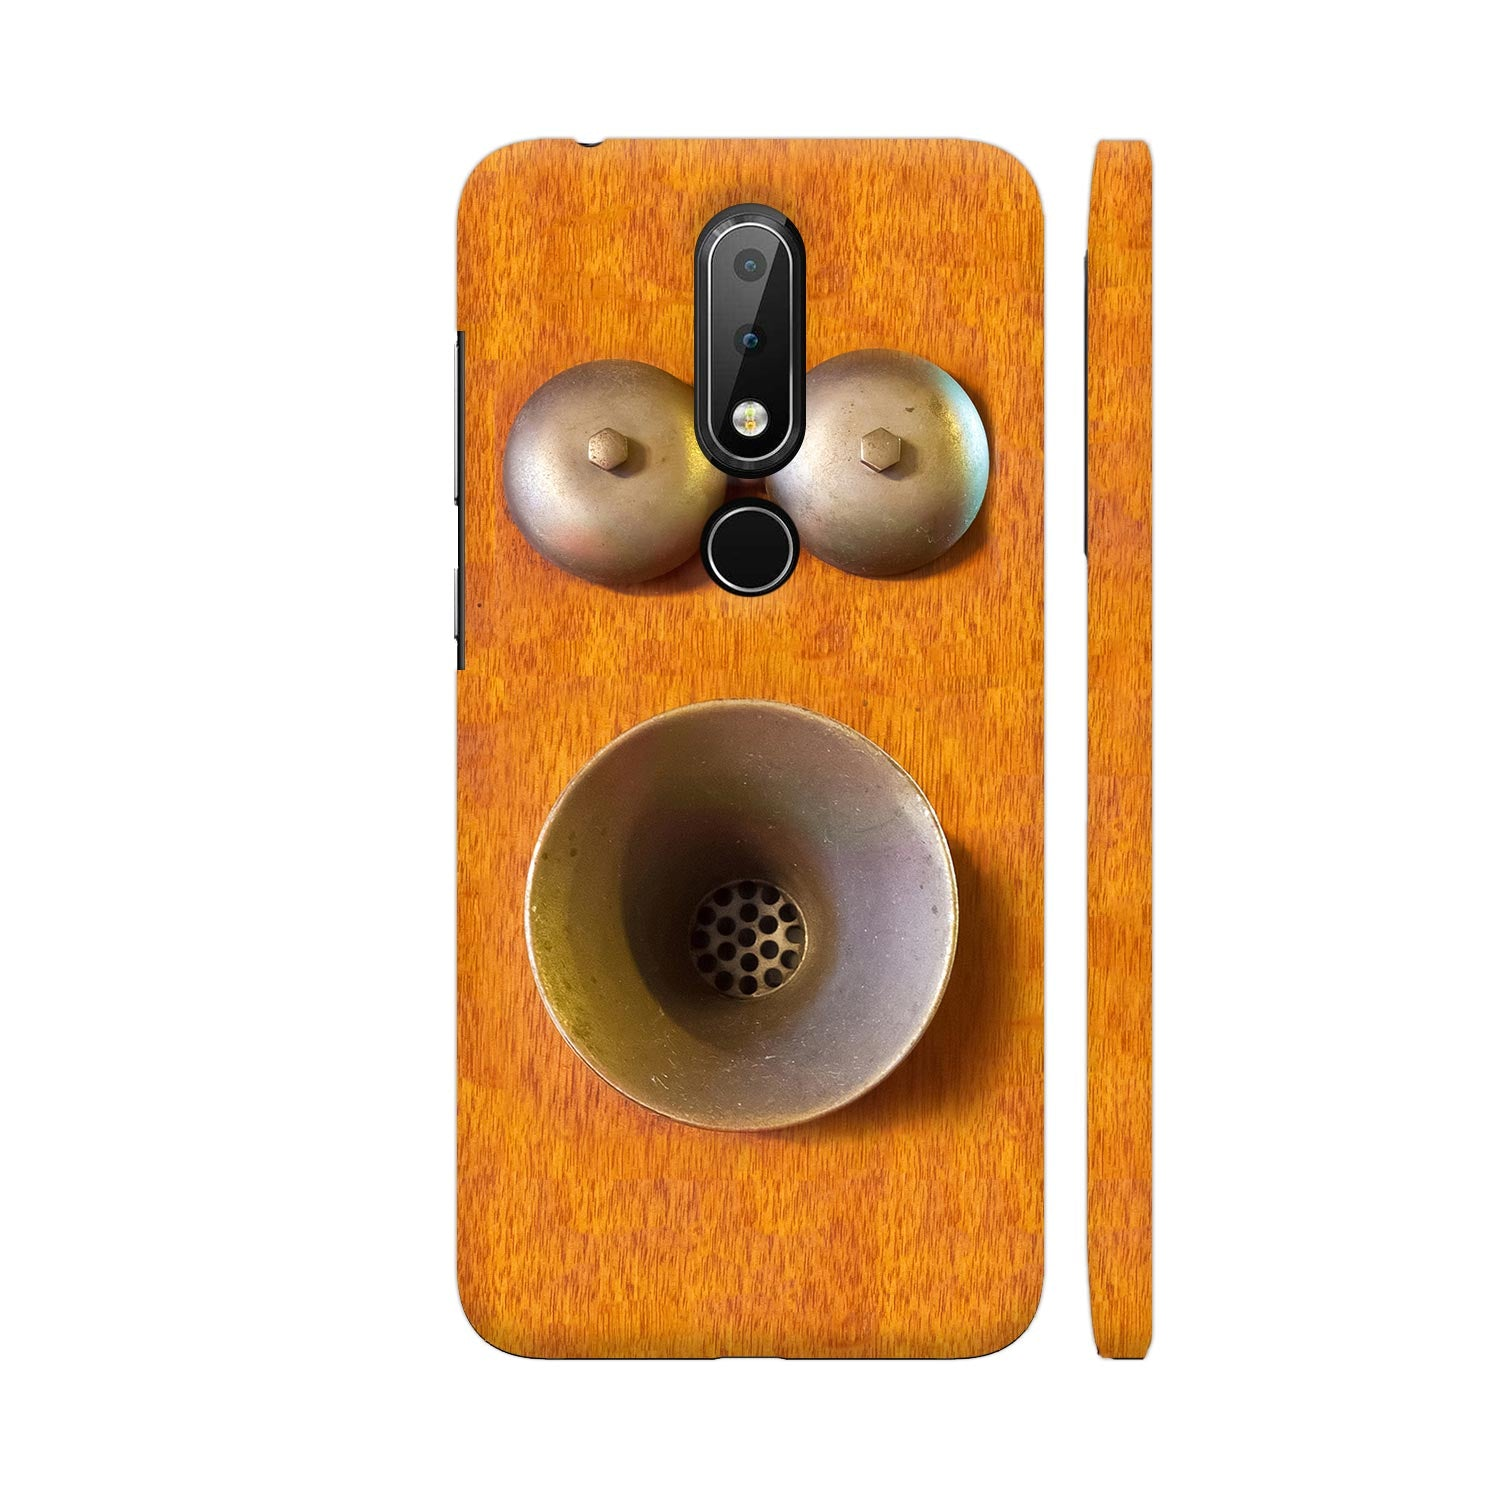 The Coffin Phone, 1870s Vintage Slim Case And Cover For Nokia 6p1 Plus